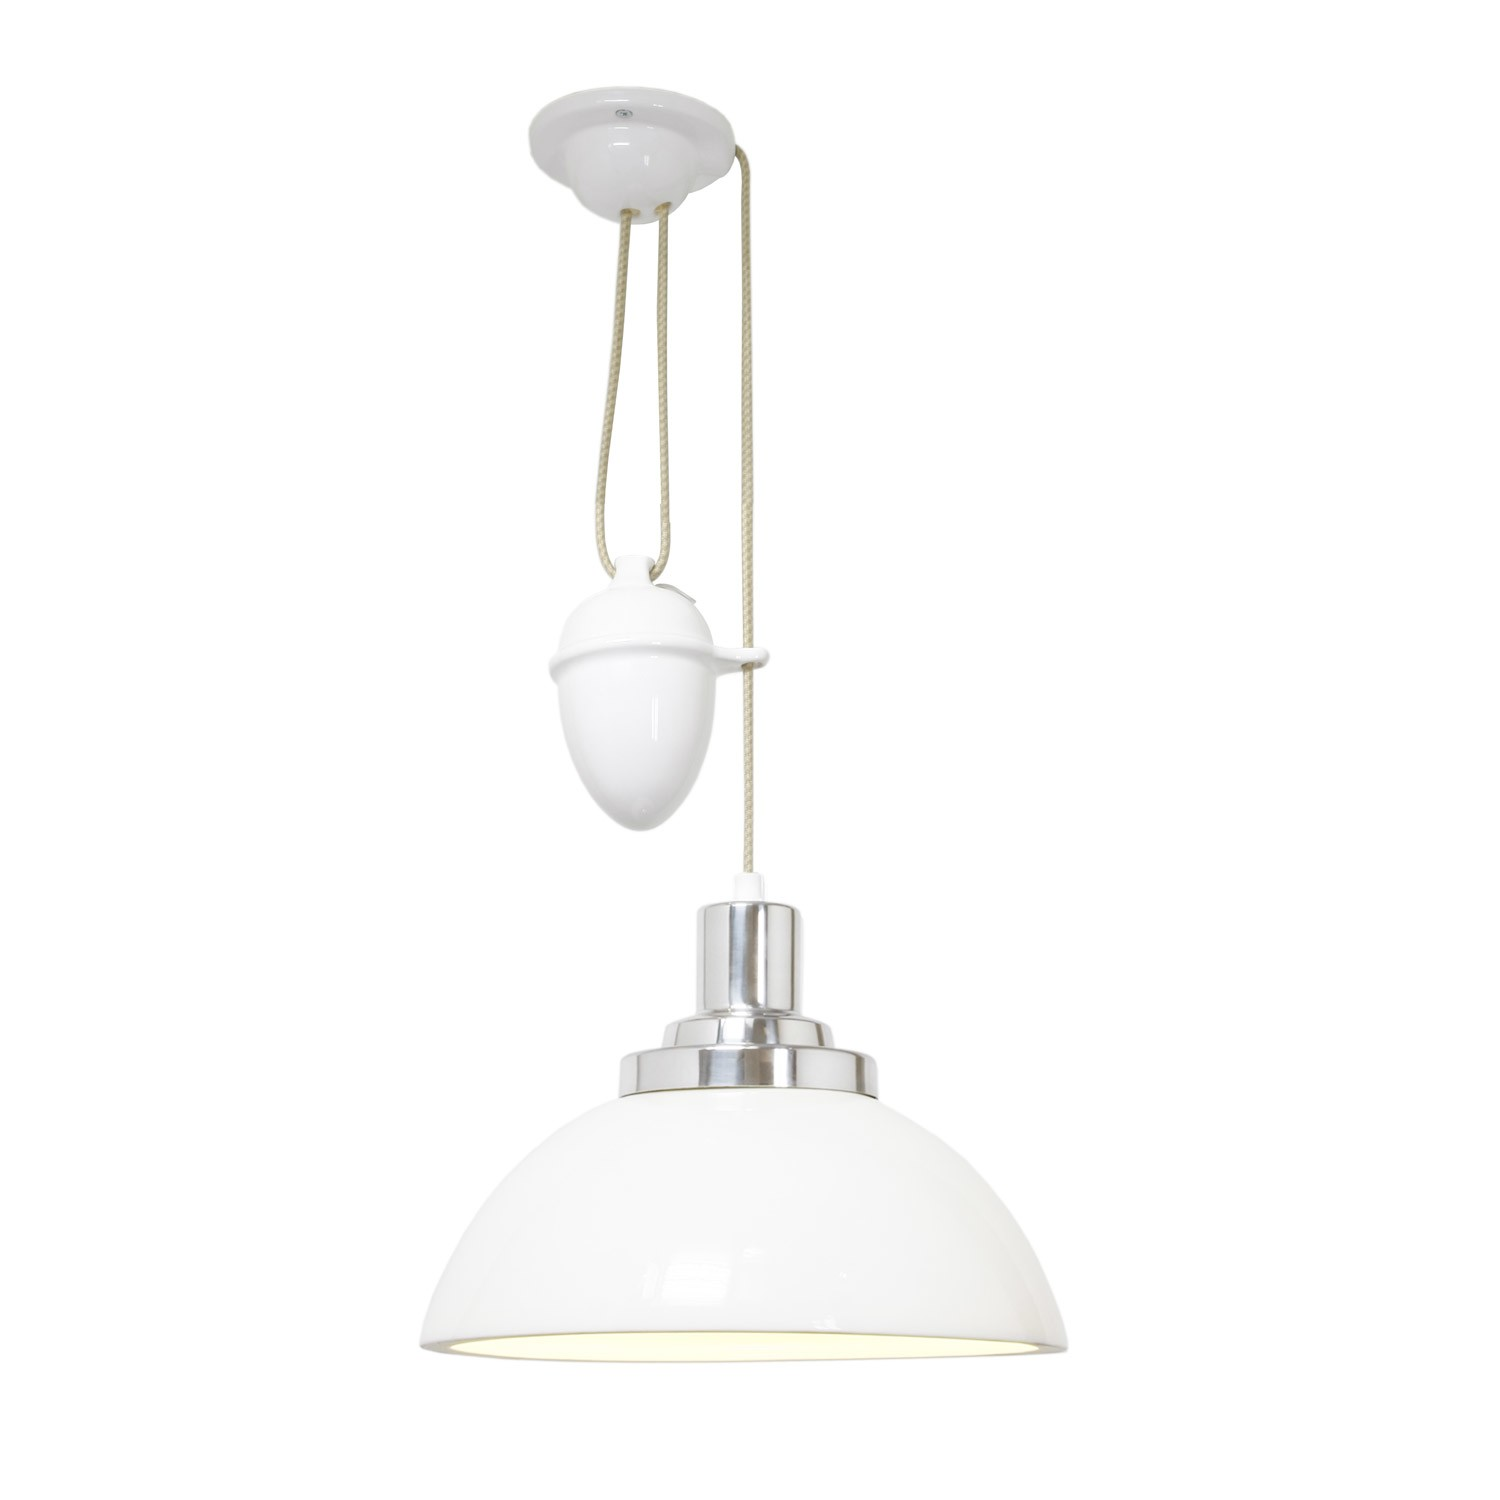 Cosmo Pendant Light Rise & Fall